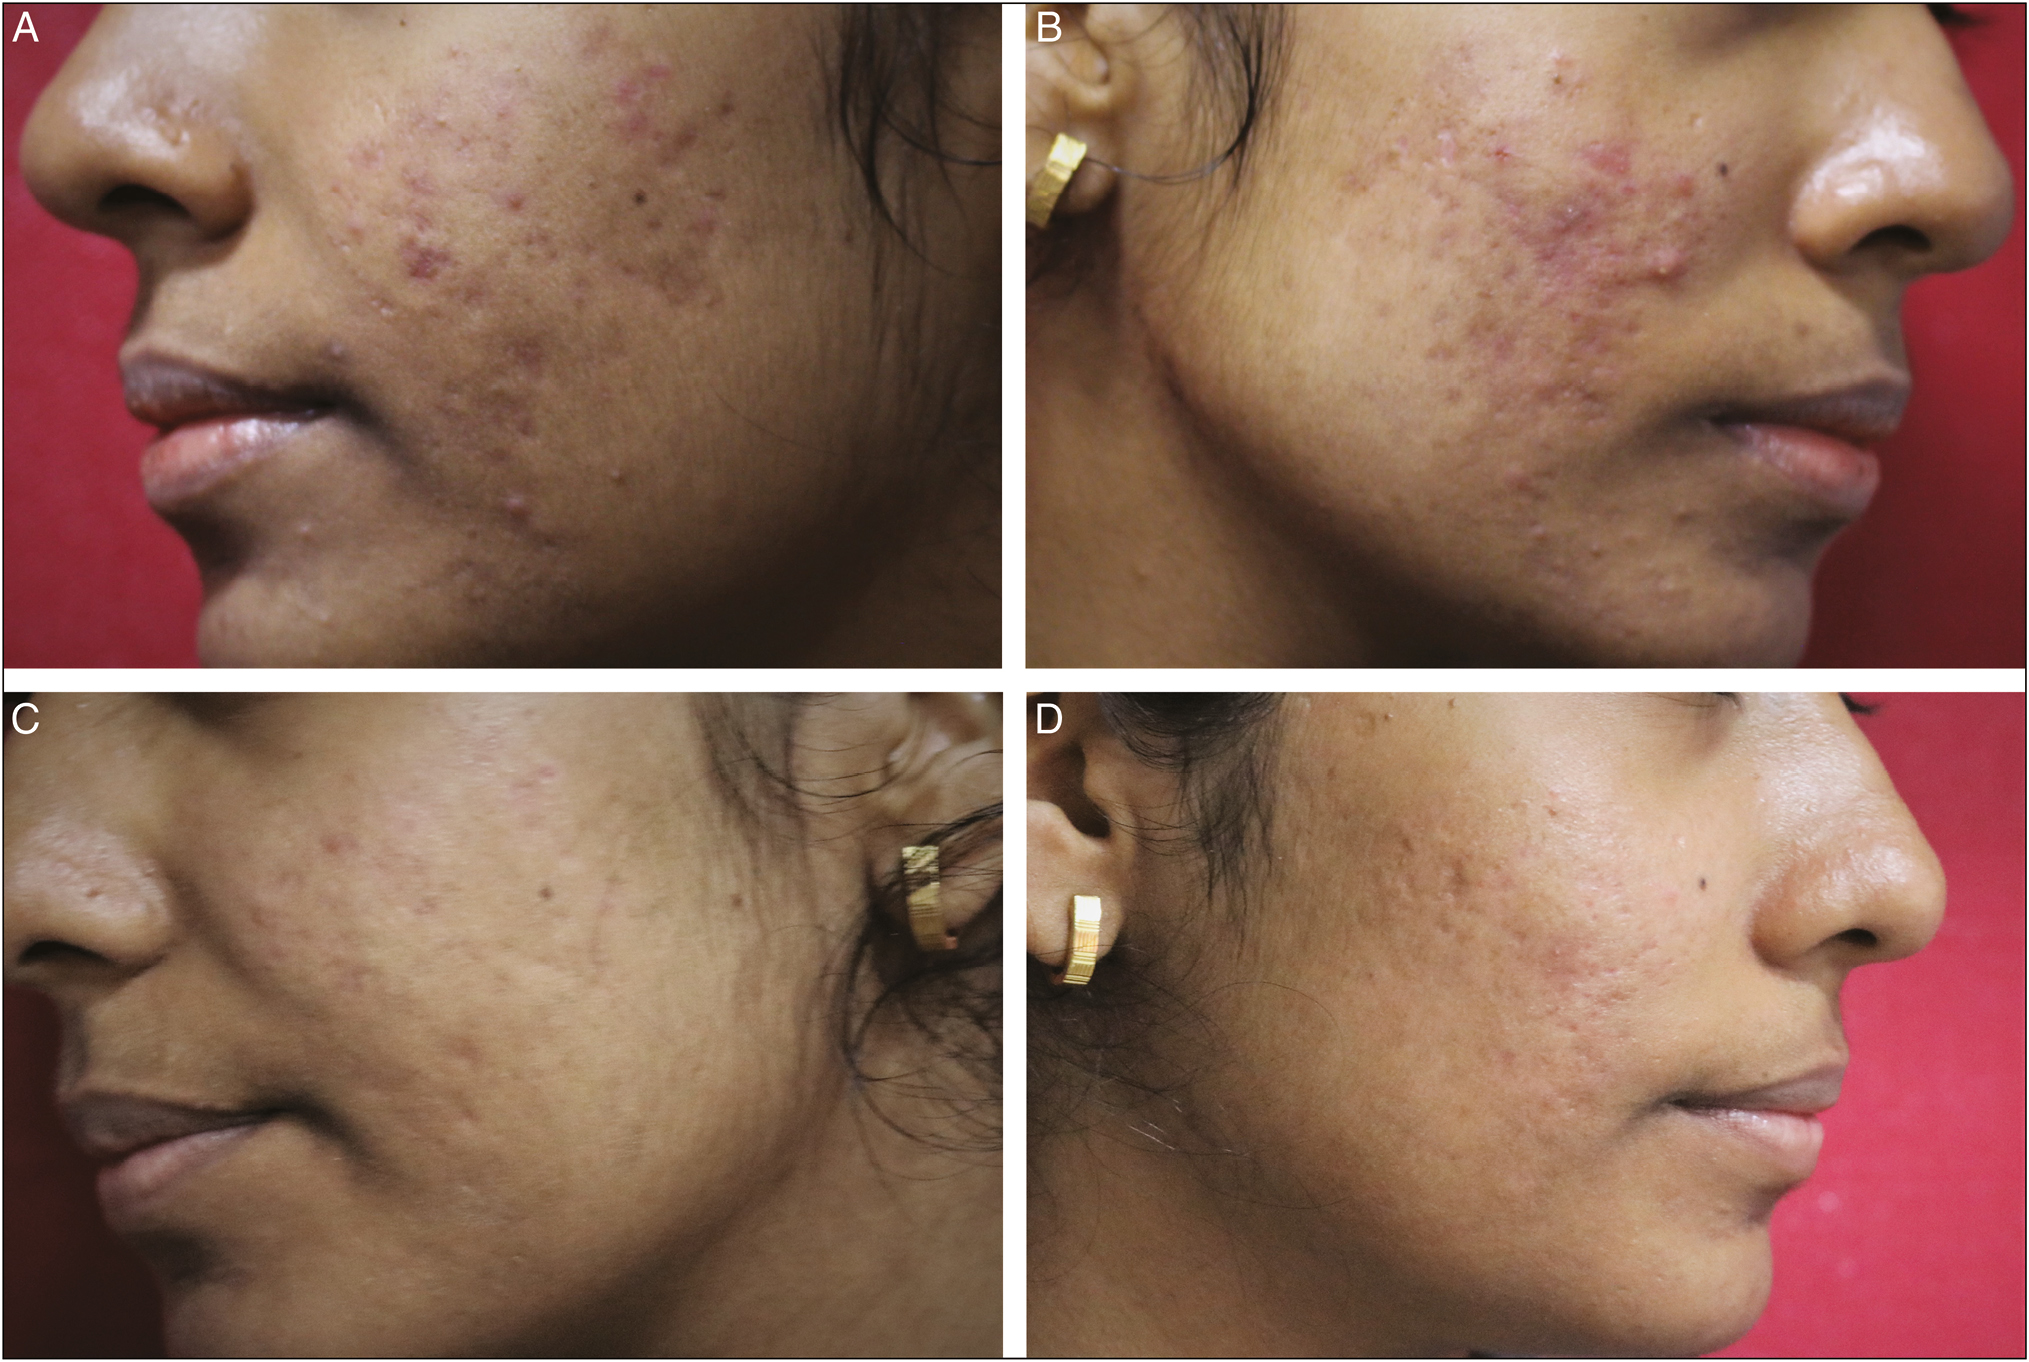 Figure 3: Erythematous acne scars (grade 3) with few active acne lesions. (A and B) before, (C and D) after peels and AFRCL